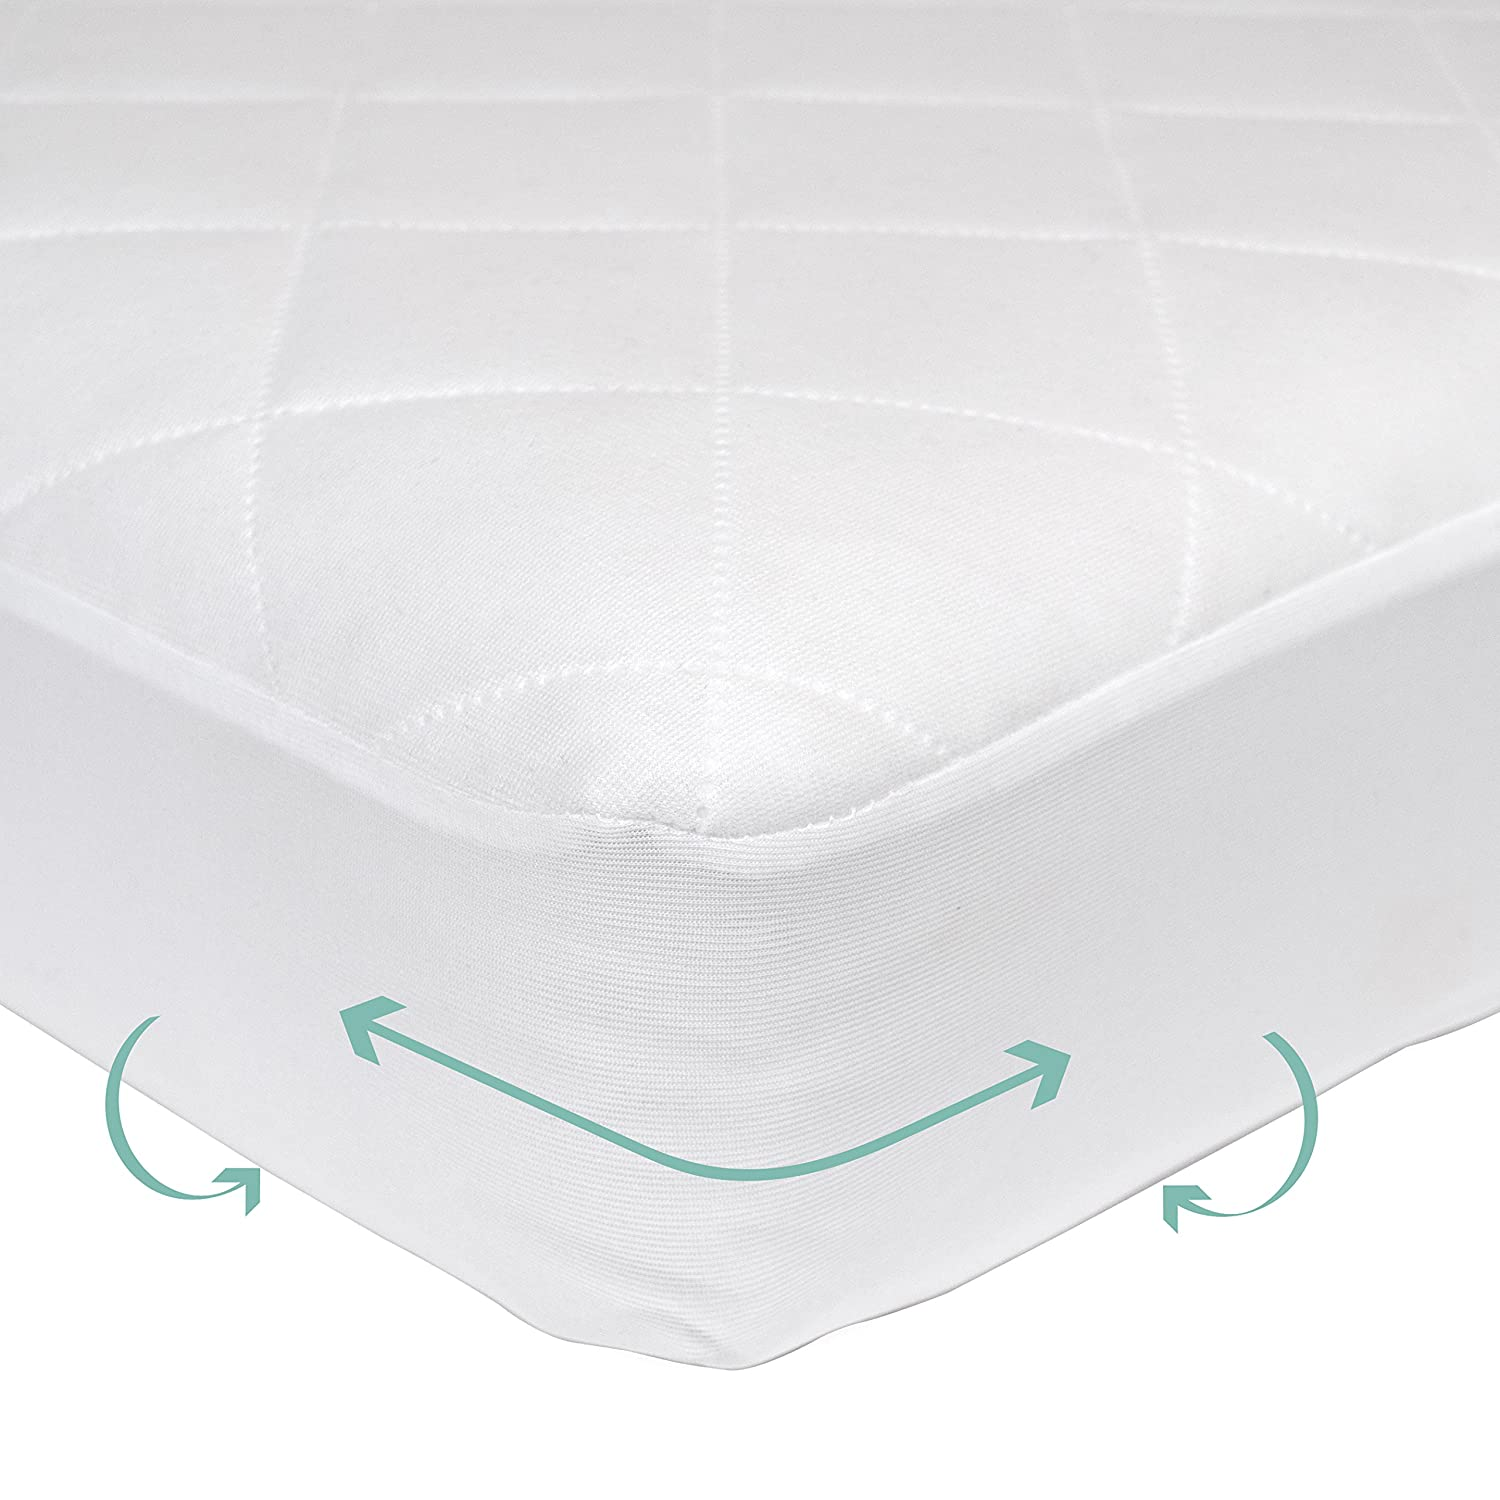 Kolcraft Baby Dri Waterproof Crib and Toddler Mattress Pad Cover, White, 52